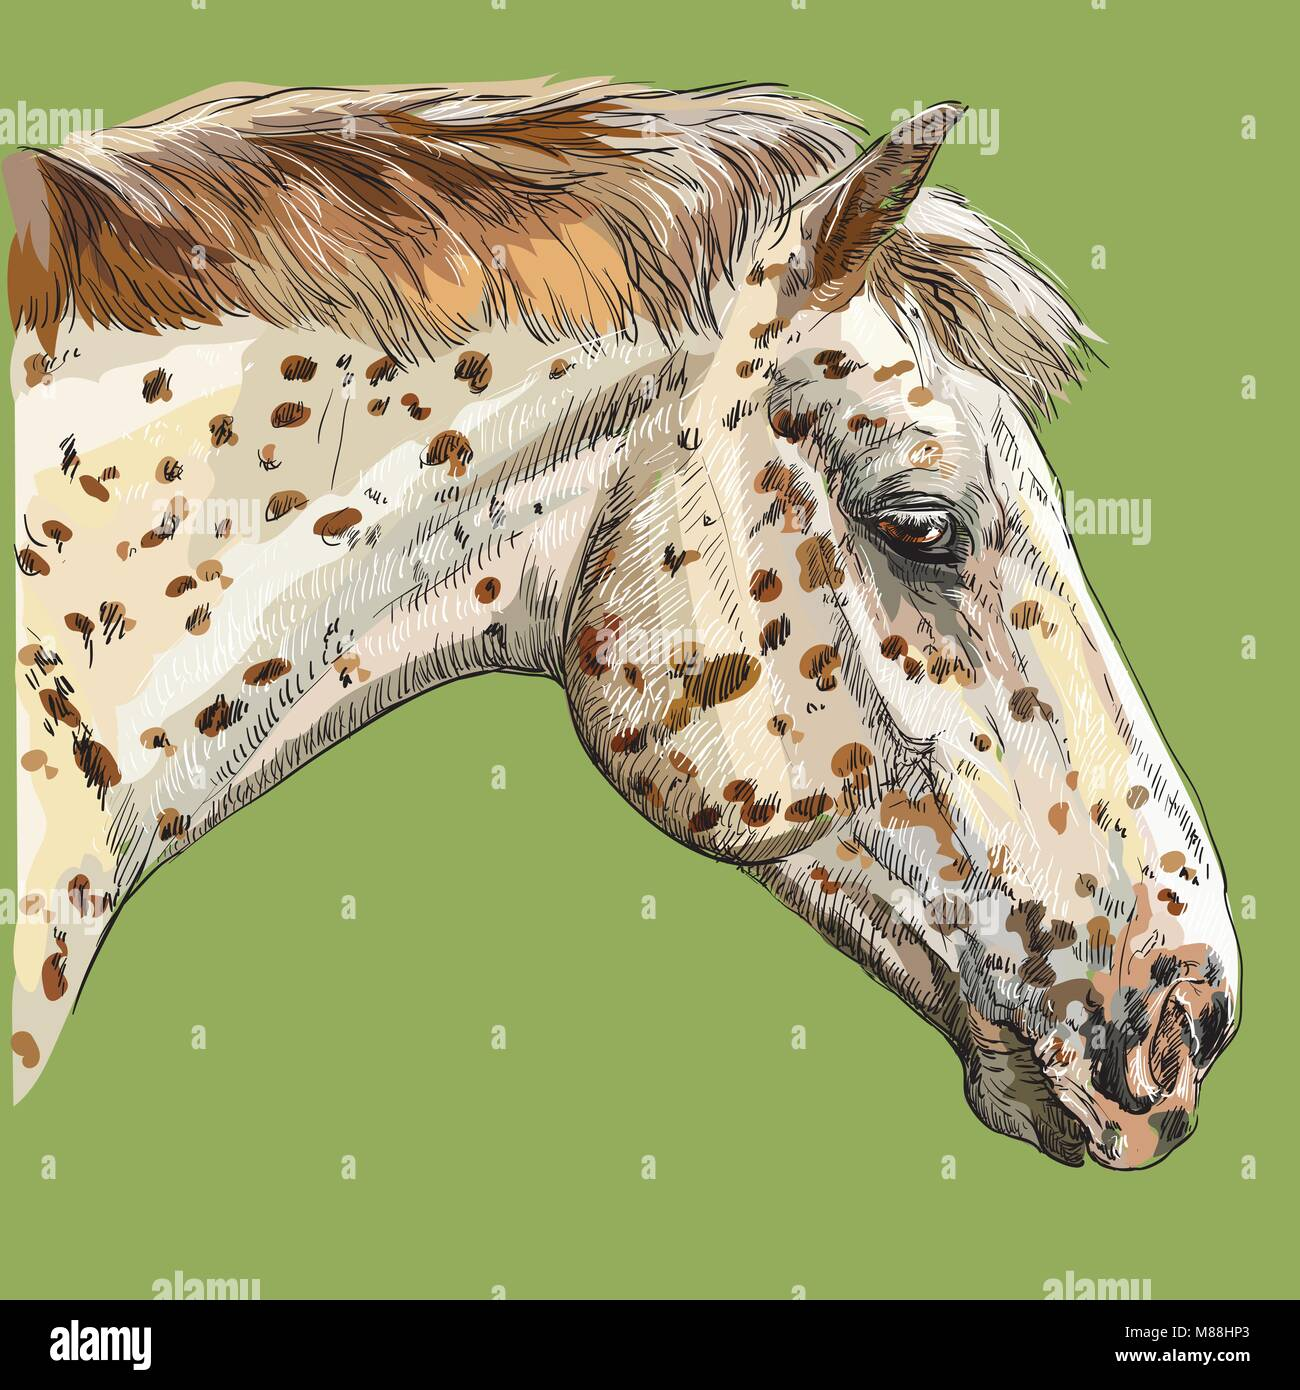 Colorful Portrait Of Appaloosa Horse Horse S Spotted Head In Profile Stock Vector Image Art Alamy